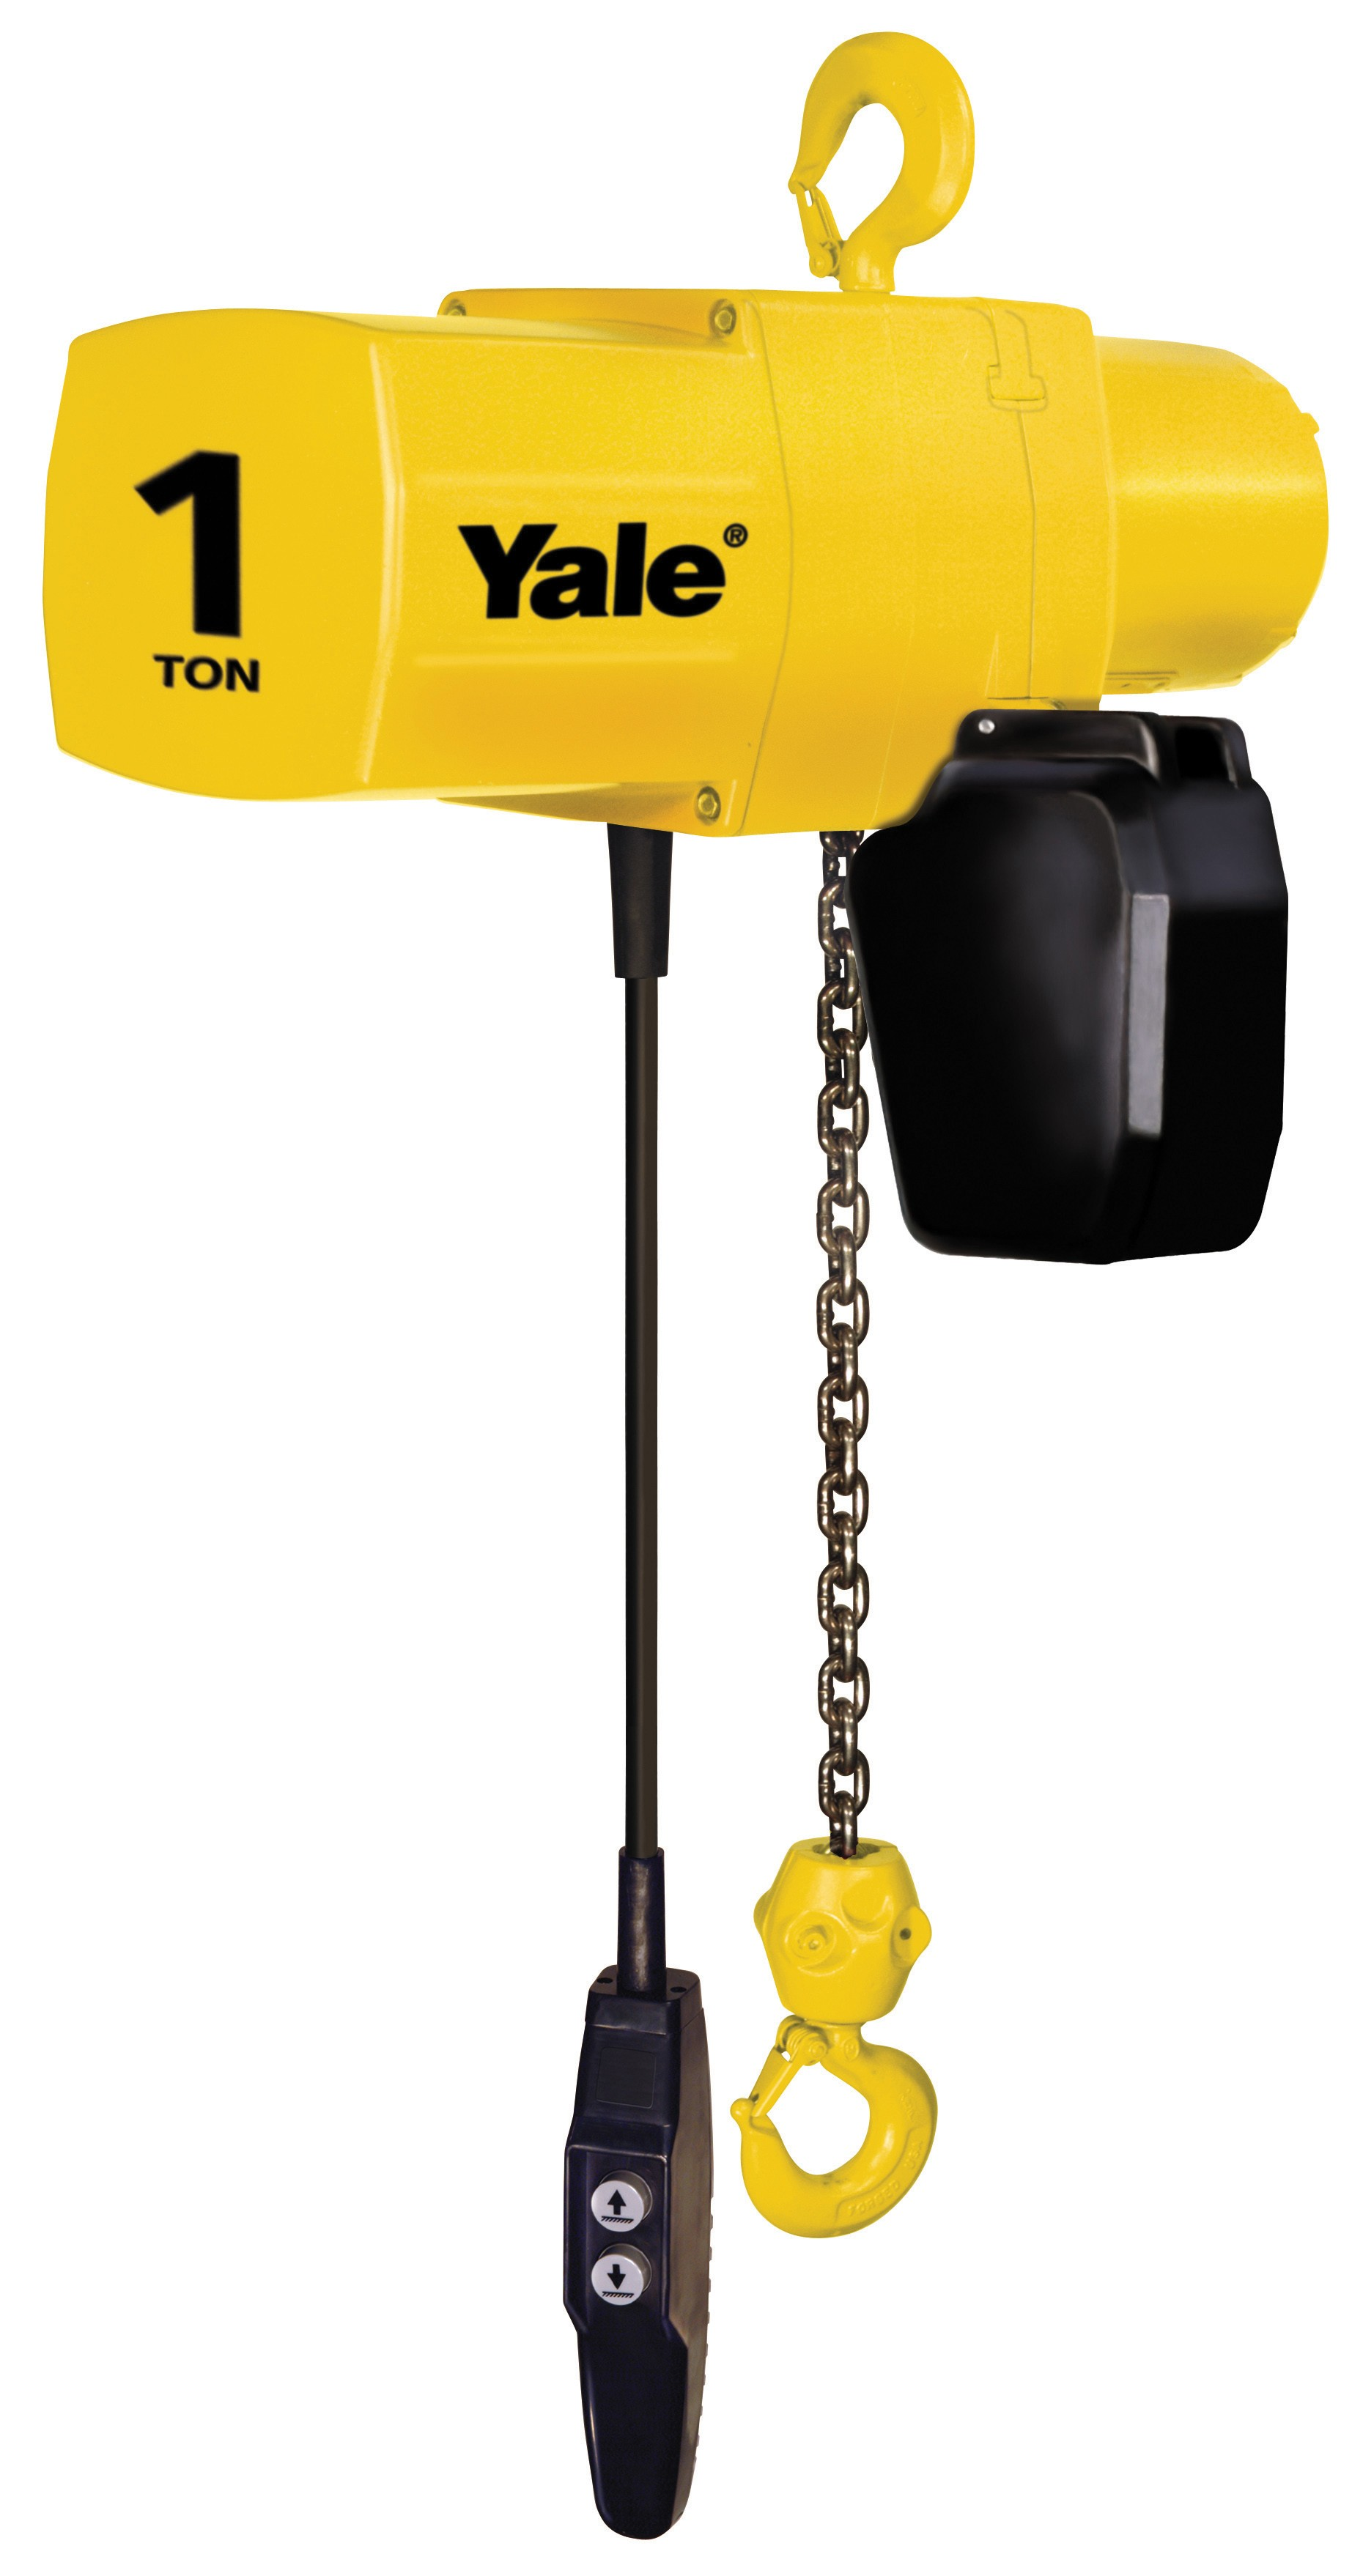 Cm Electric Chain Hoist Wiring Diagram 1 Ton Manual Yale Yjl